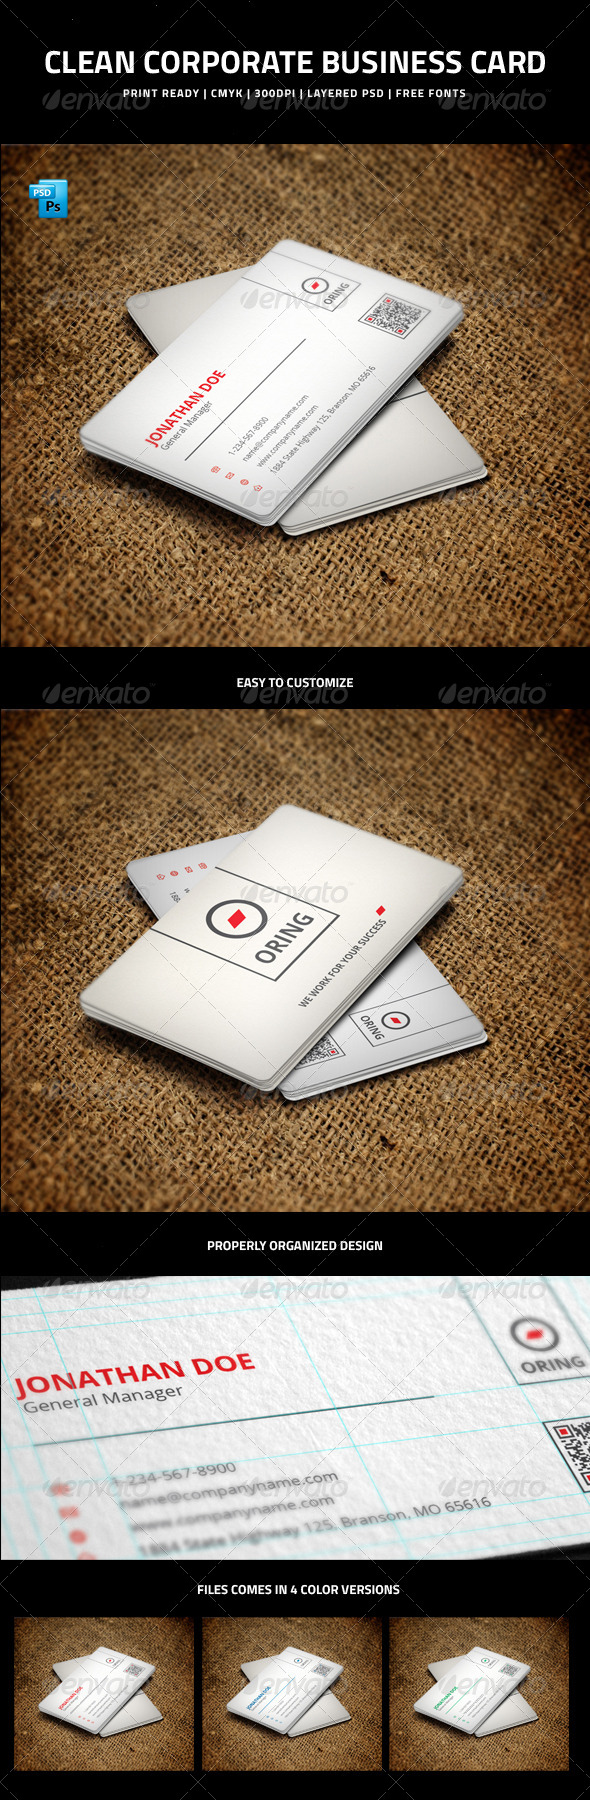 Clean Corporate Business Card with QR code - 5 - Corporate Business Cards